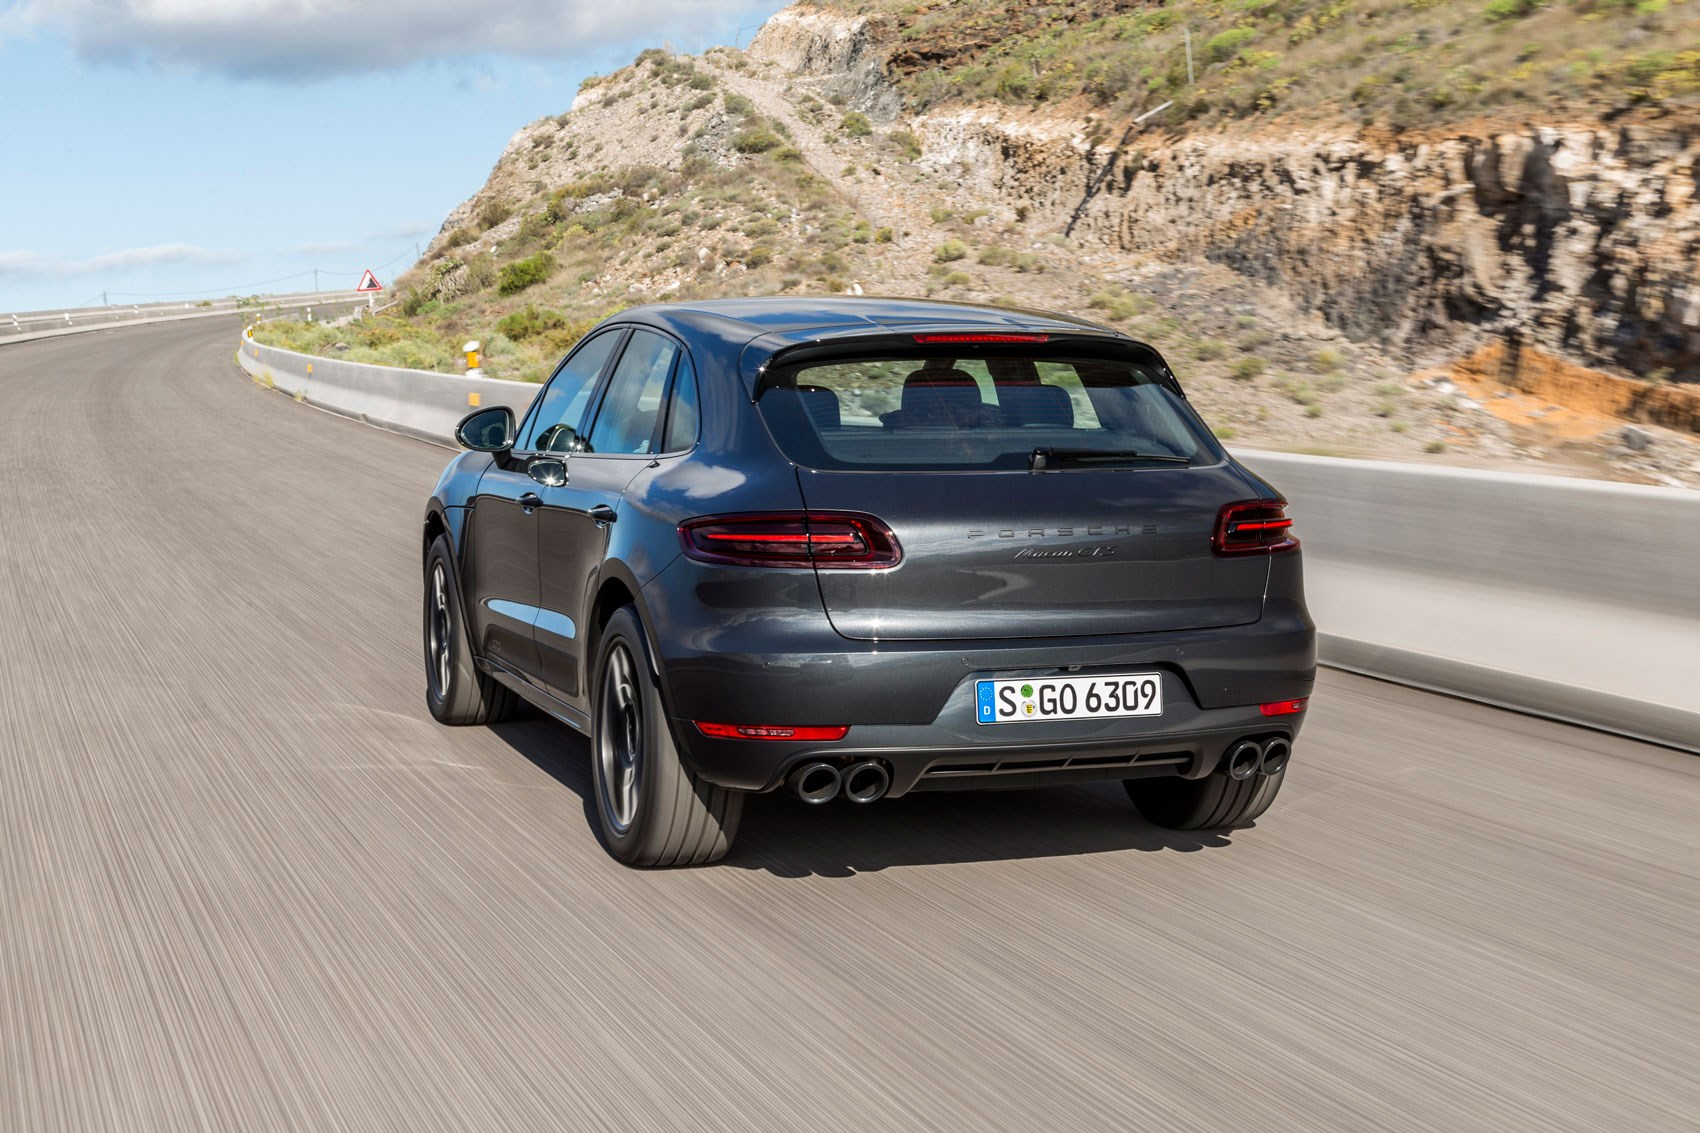 Chevrolet Lease Deals >> Porsche Macan GTS (2016) review | CAR Magazine